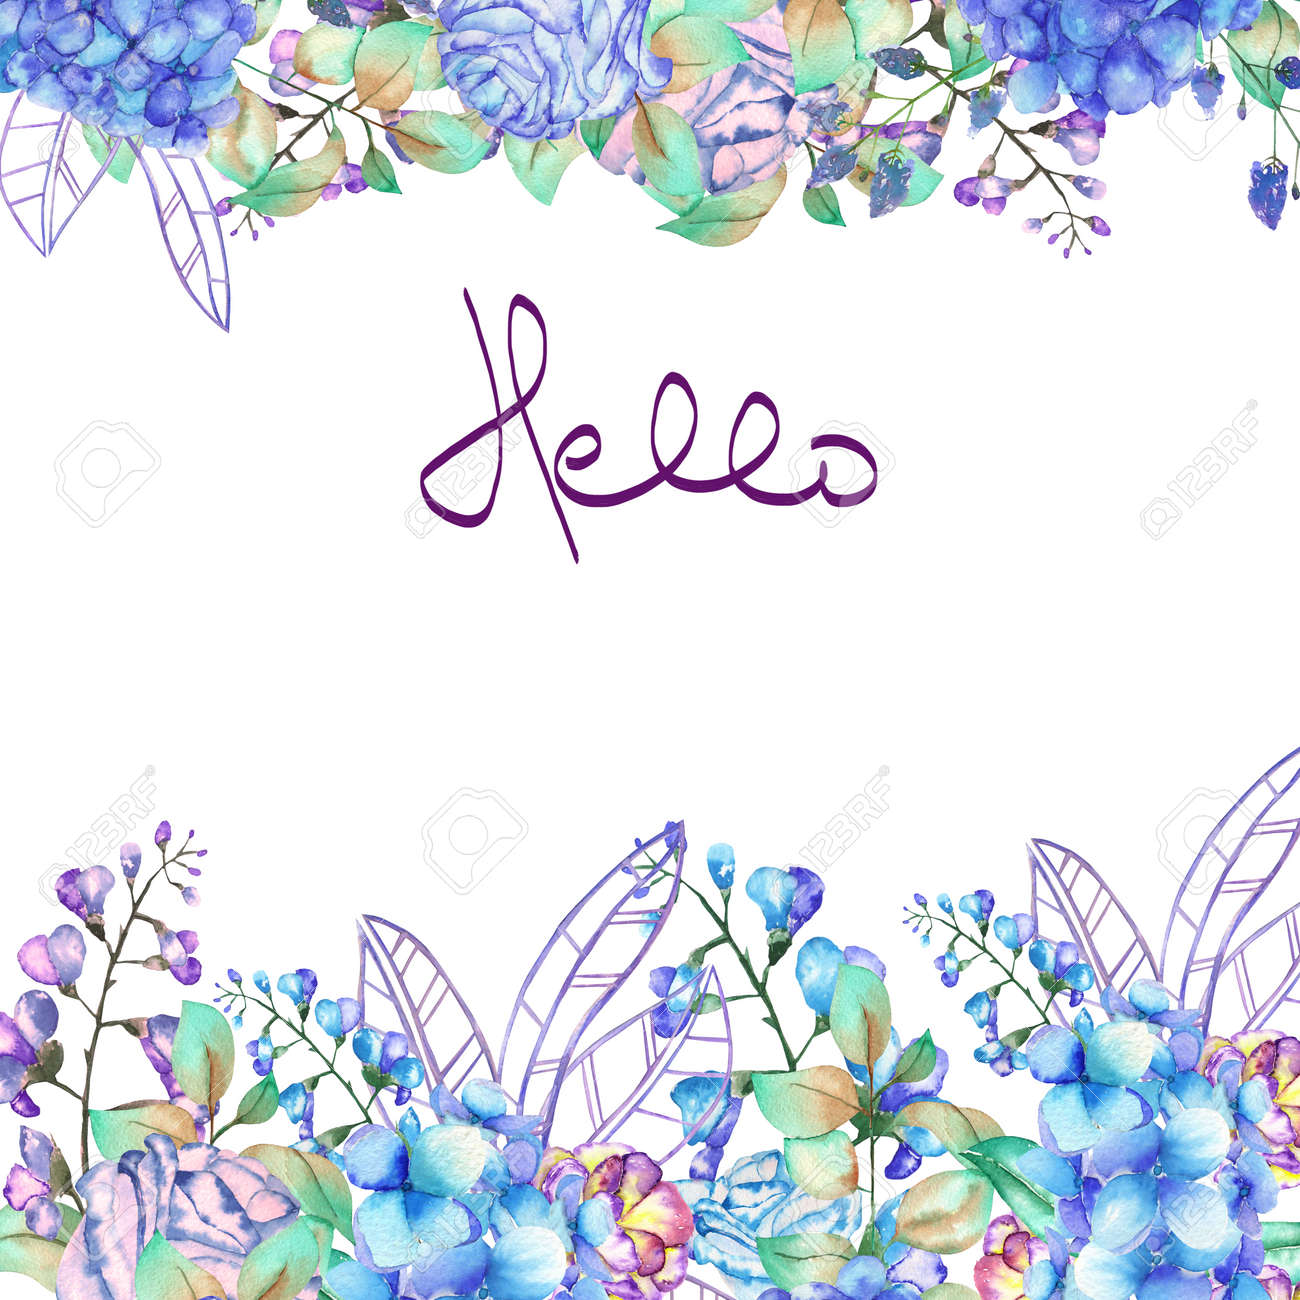 Floral Frame Border Template For Postcard With Purple And Blue Hydrangea Flowers Bluebell